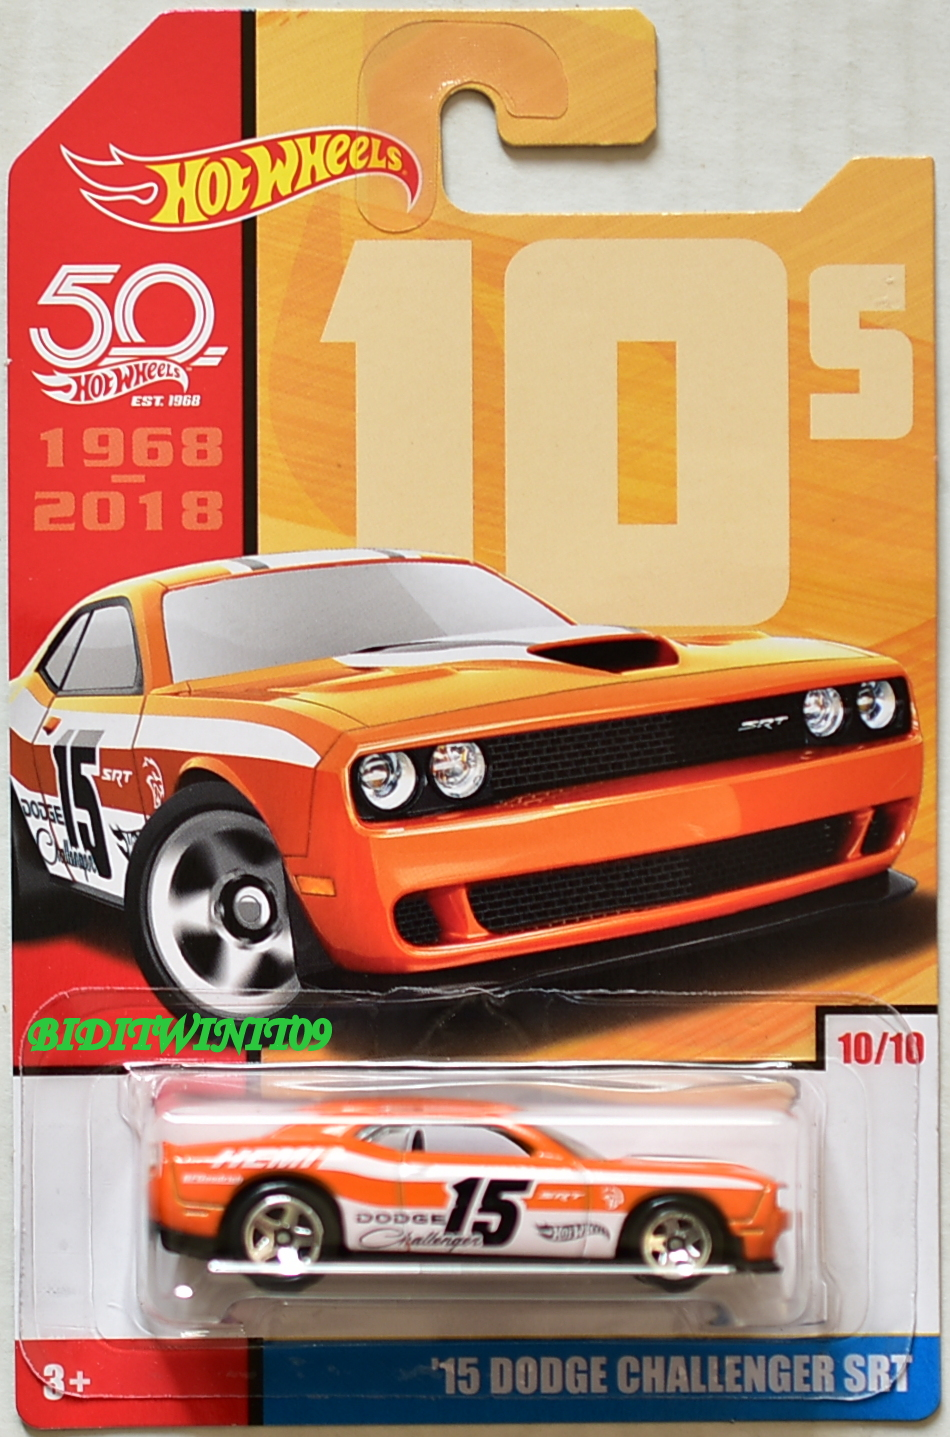 HOT WHEELS 50 YEARS '15 DODGE CHALLENGER SRT #10/10